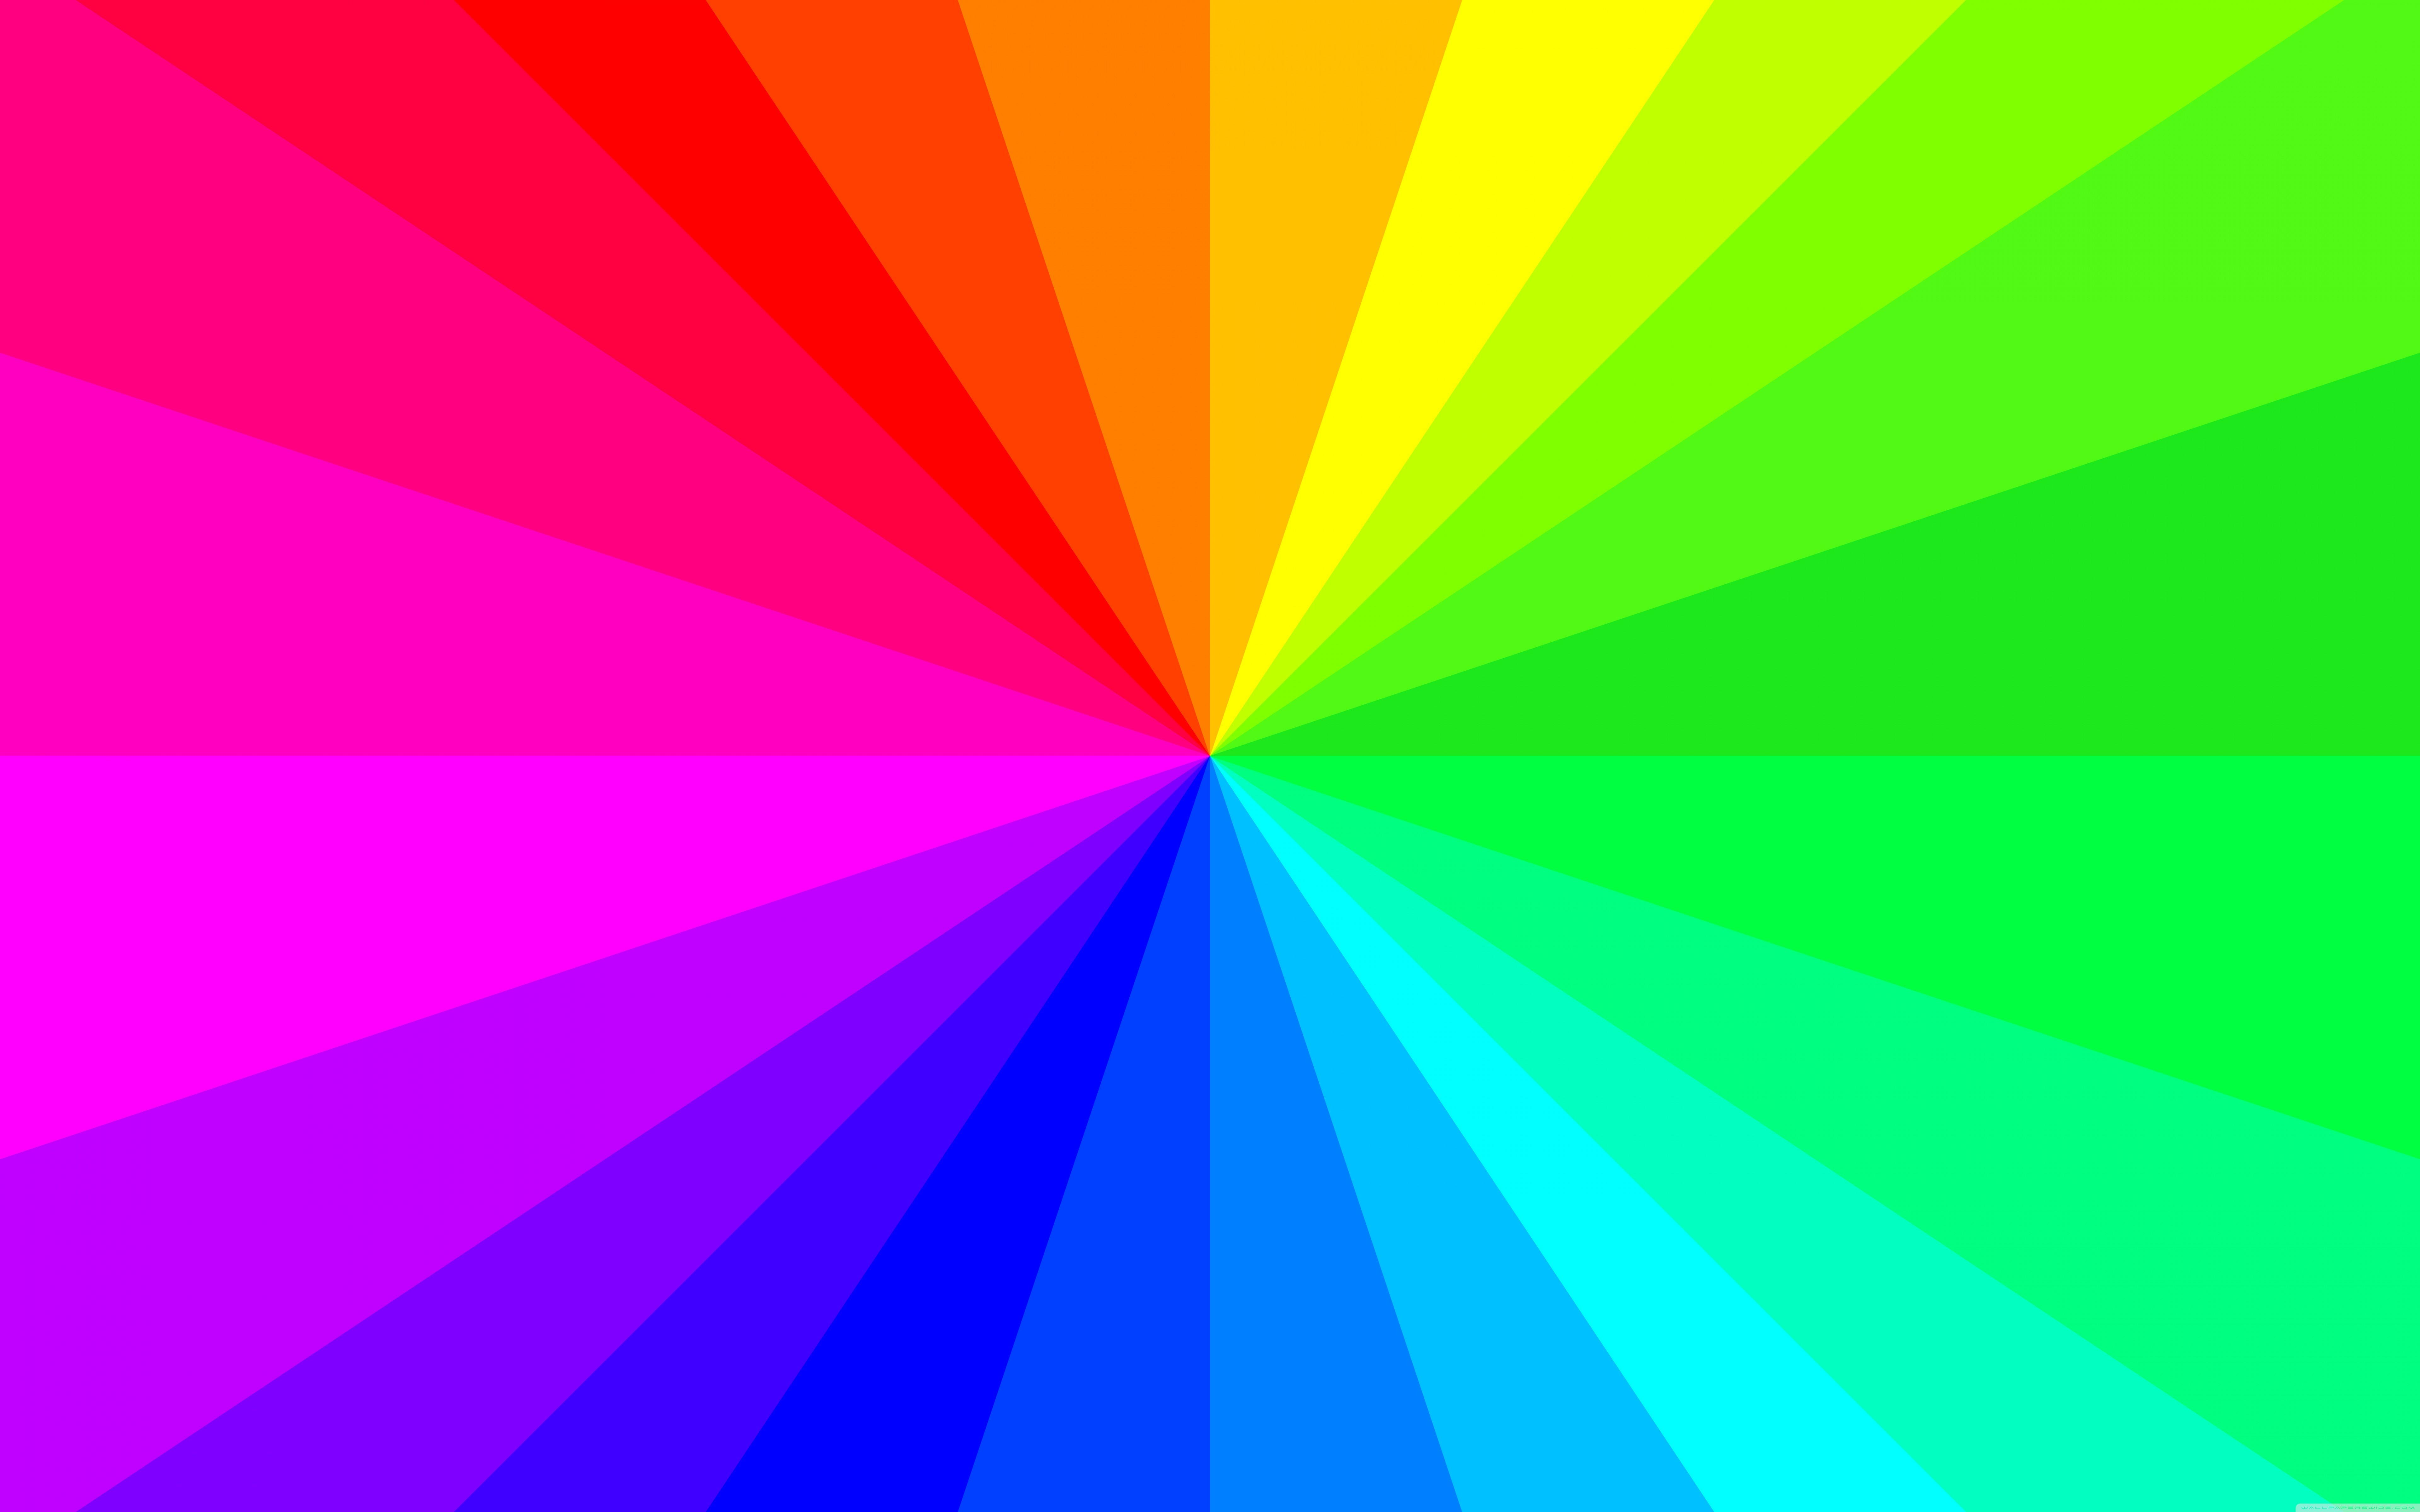 Rainbow Background Images - Wallpaper Cave